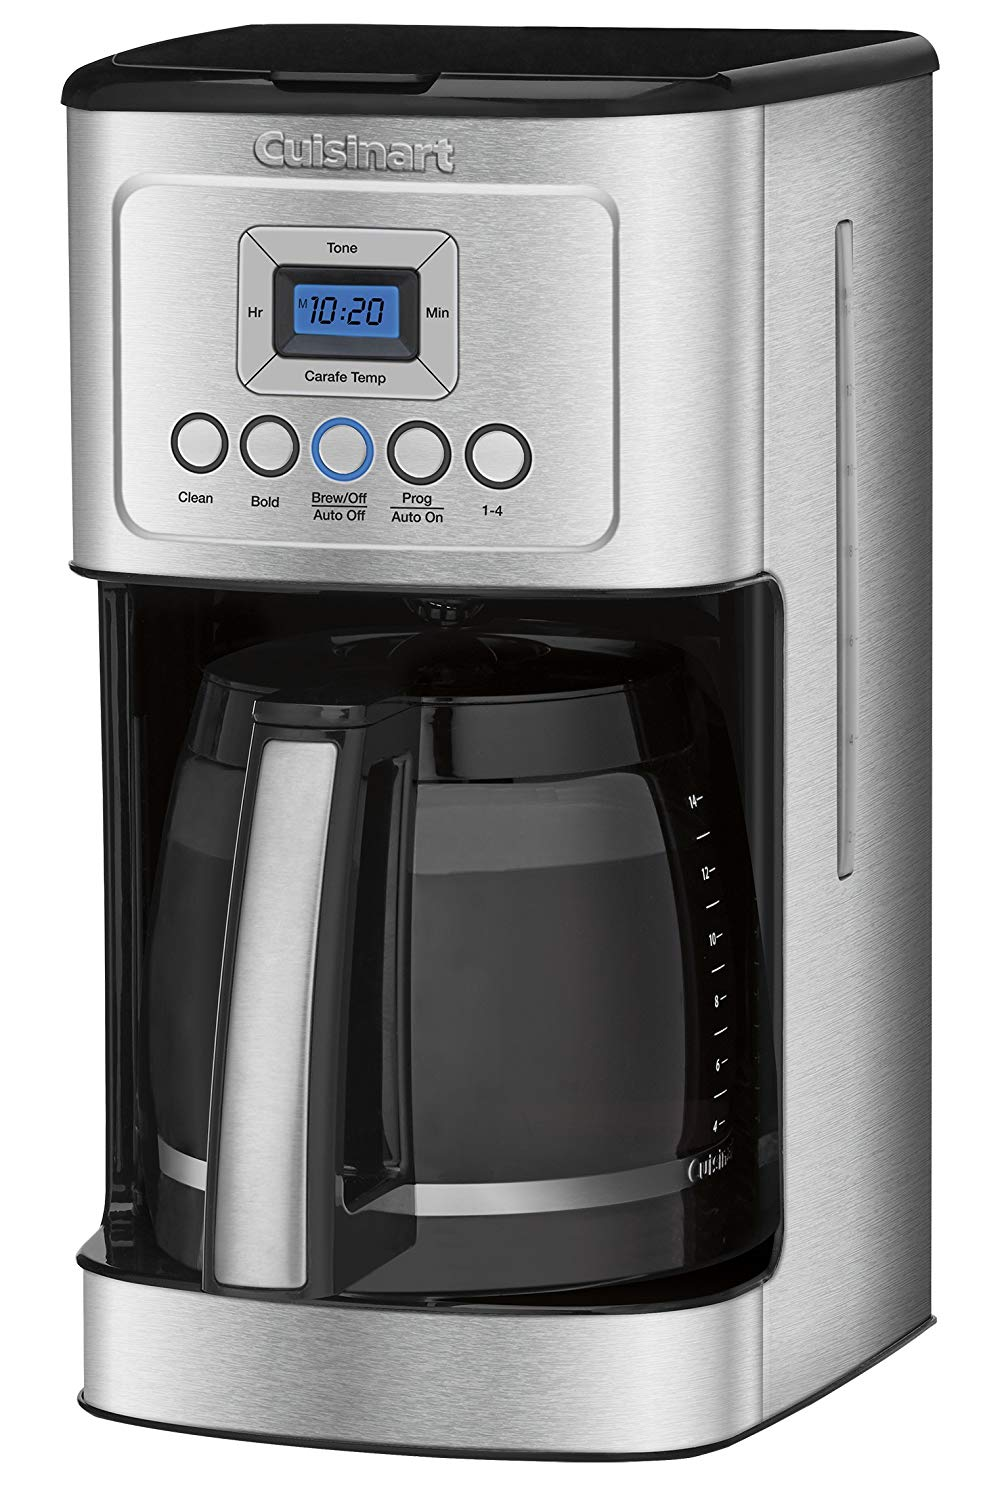 Cuisinart-Coffeemaker-Stainless-Steel-Info-Graphics